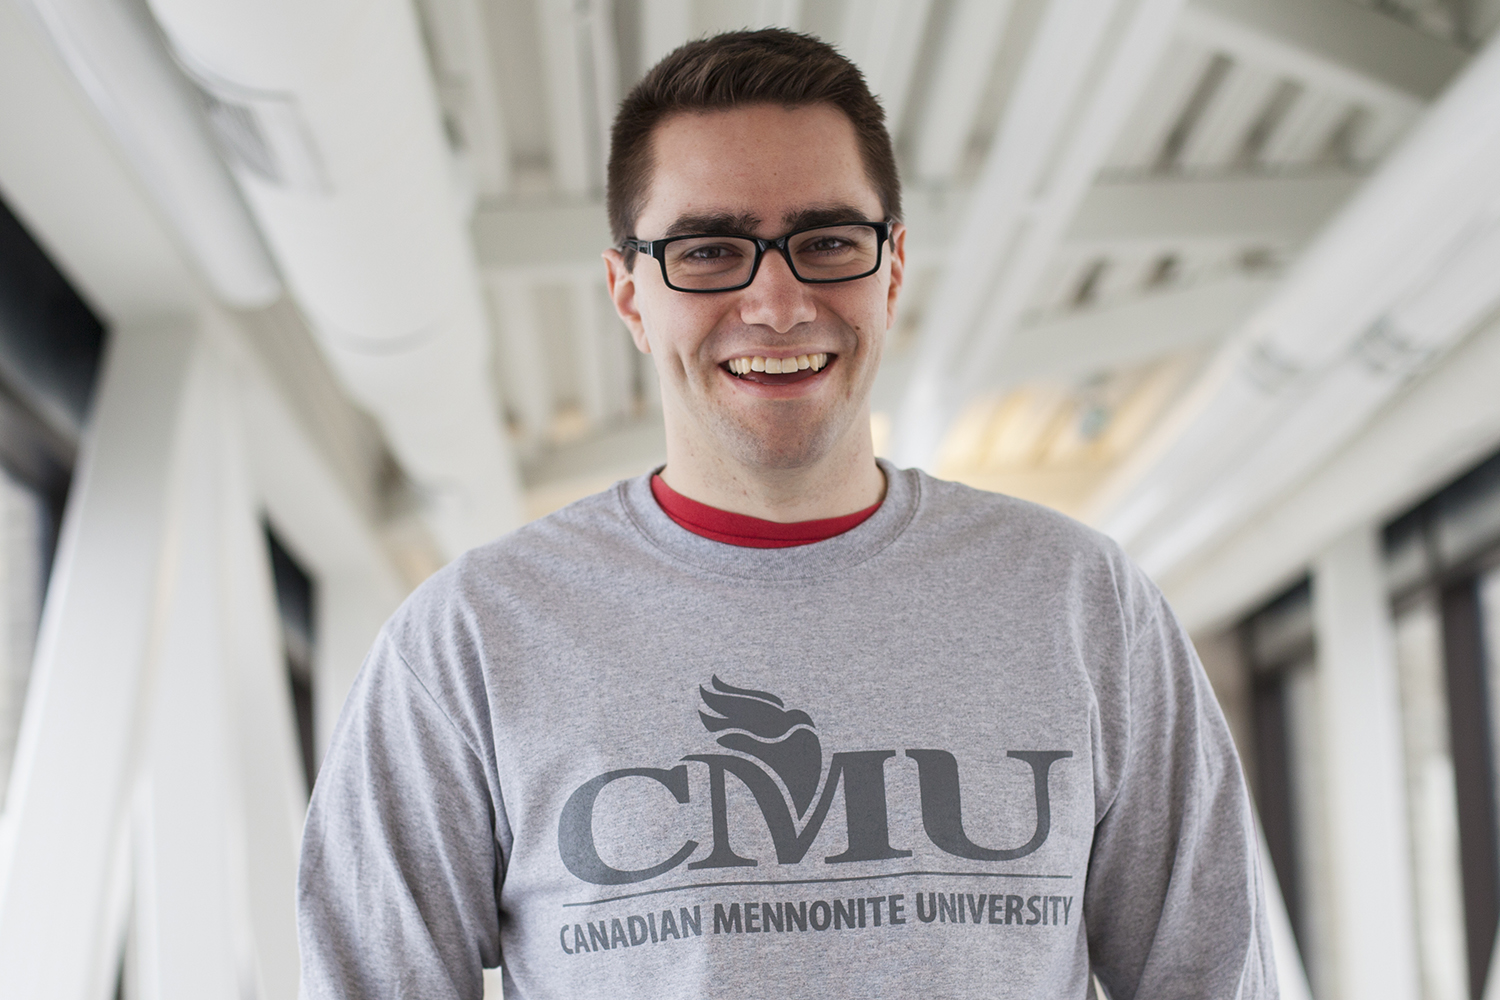 Jason Friesen - The courage to be vulnerable (Portrait of Jason Friesen on the Marpeck bridge wearing a grey long sleeved t-shirt with the CMU logo across the chest.)